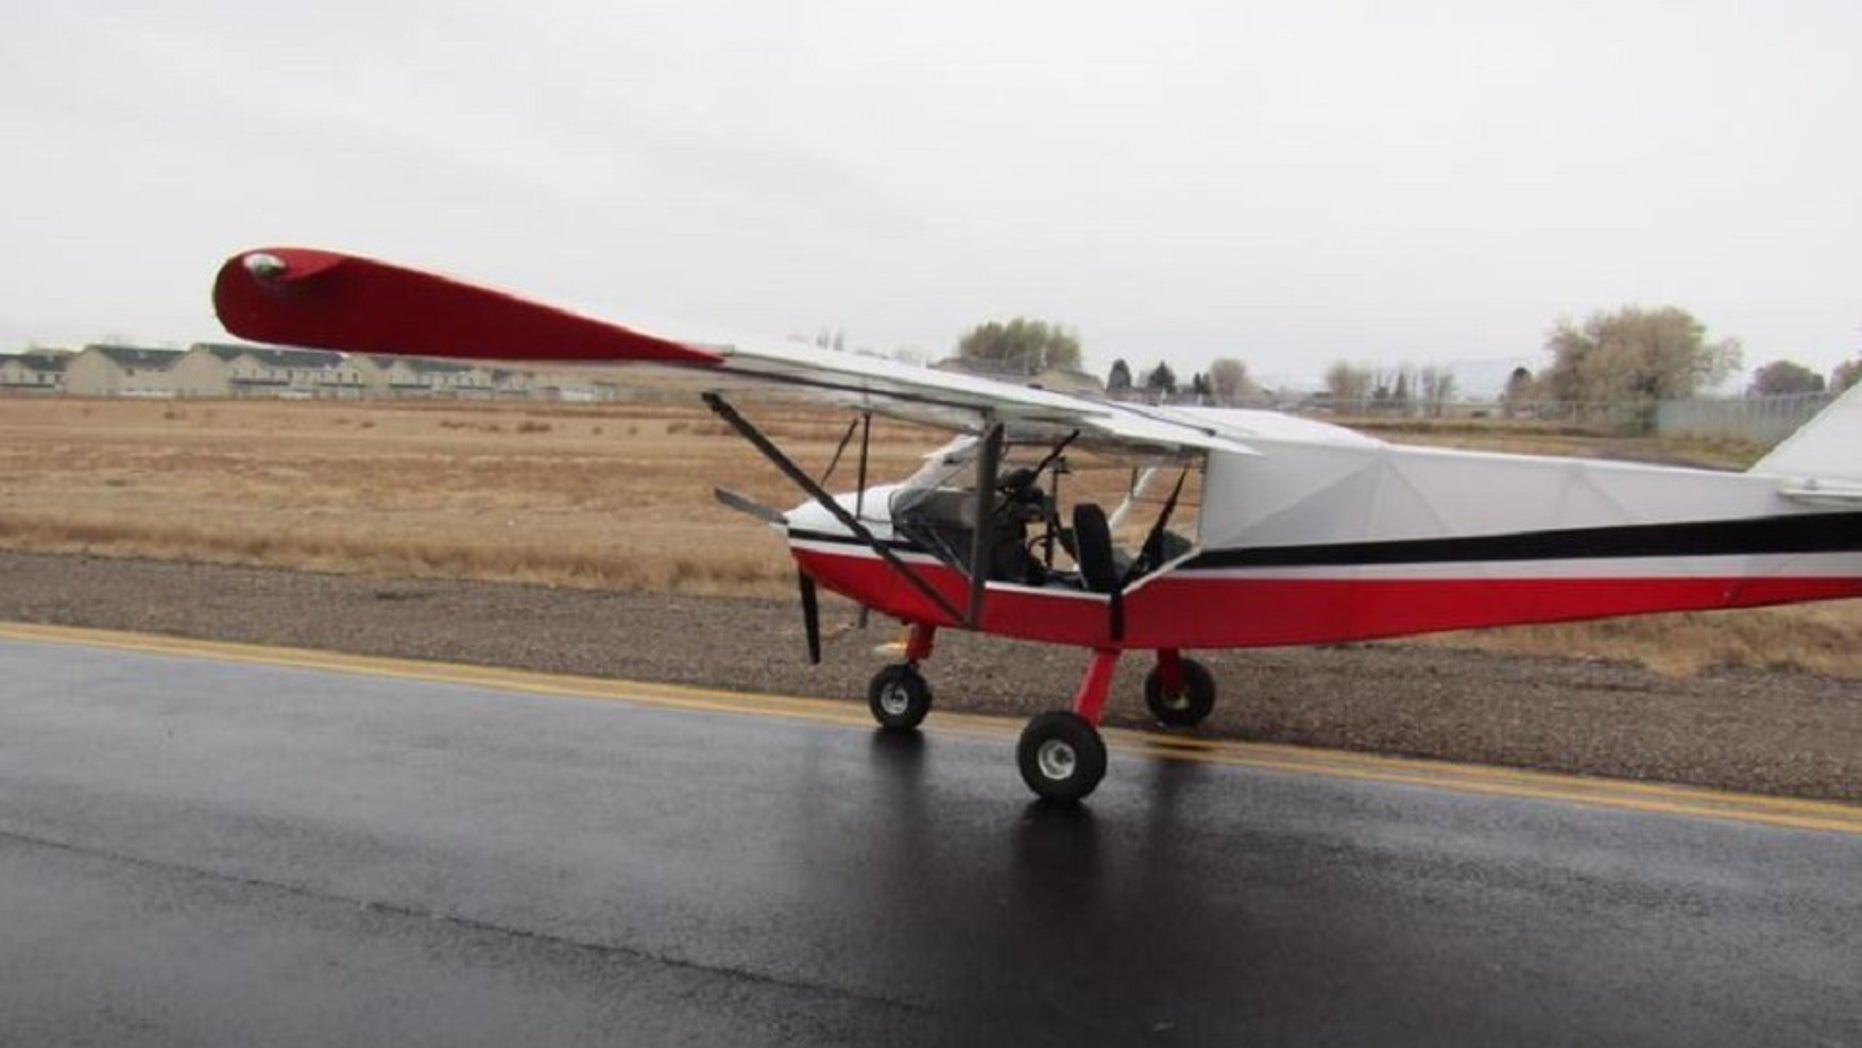 Two Utah teens are accused of stealing a small airplane.